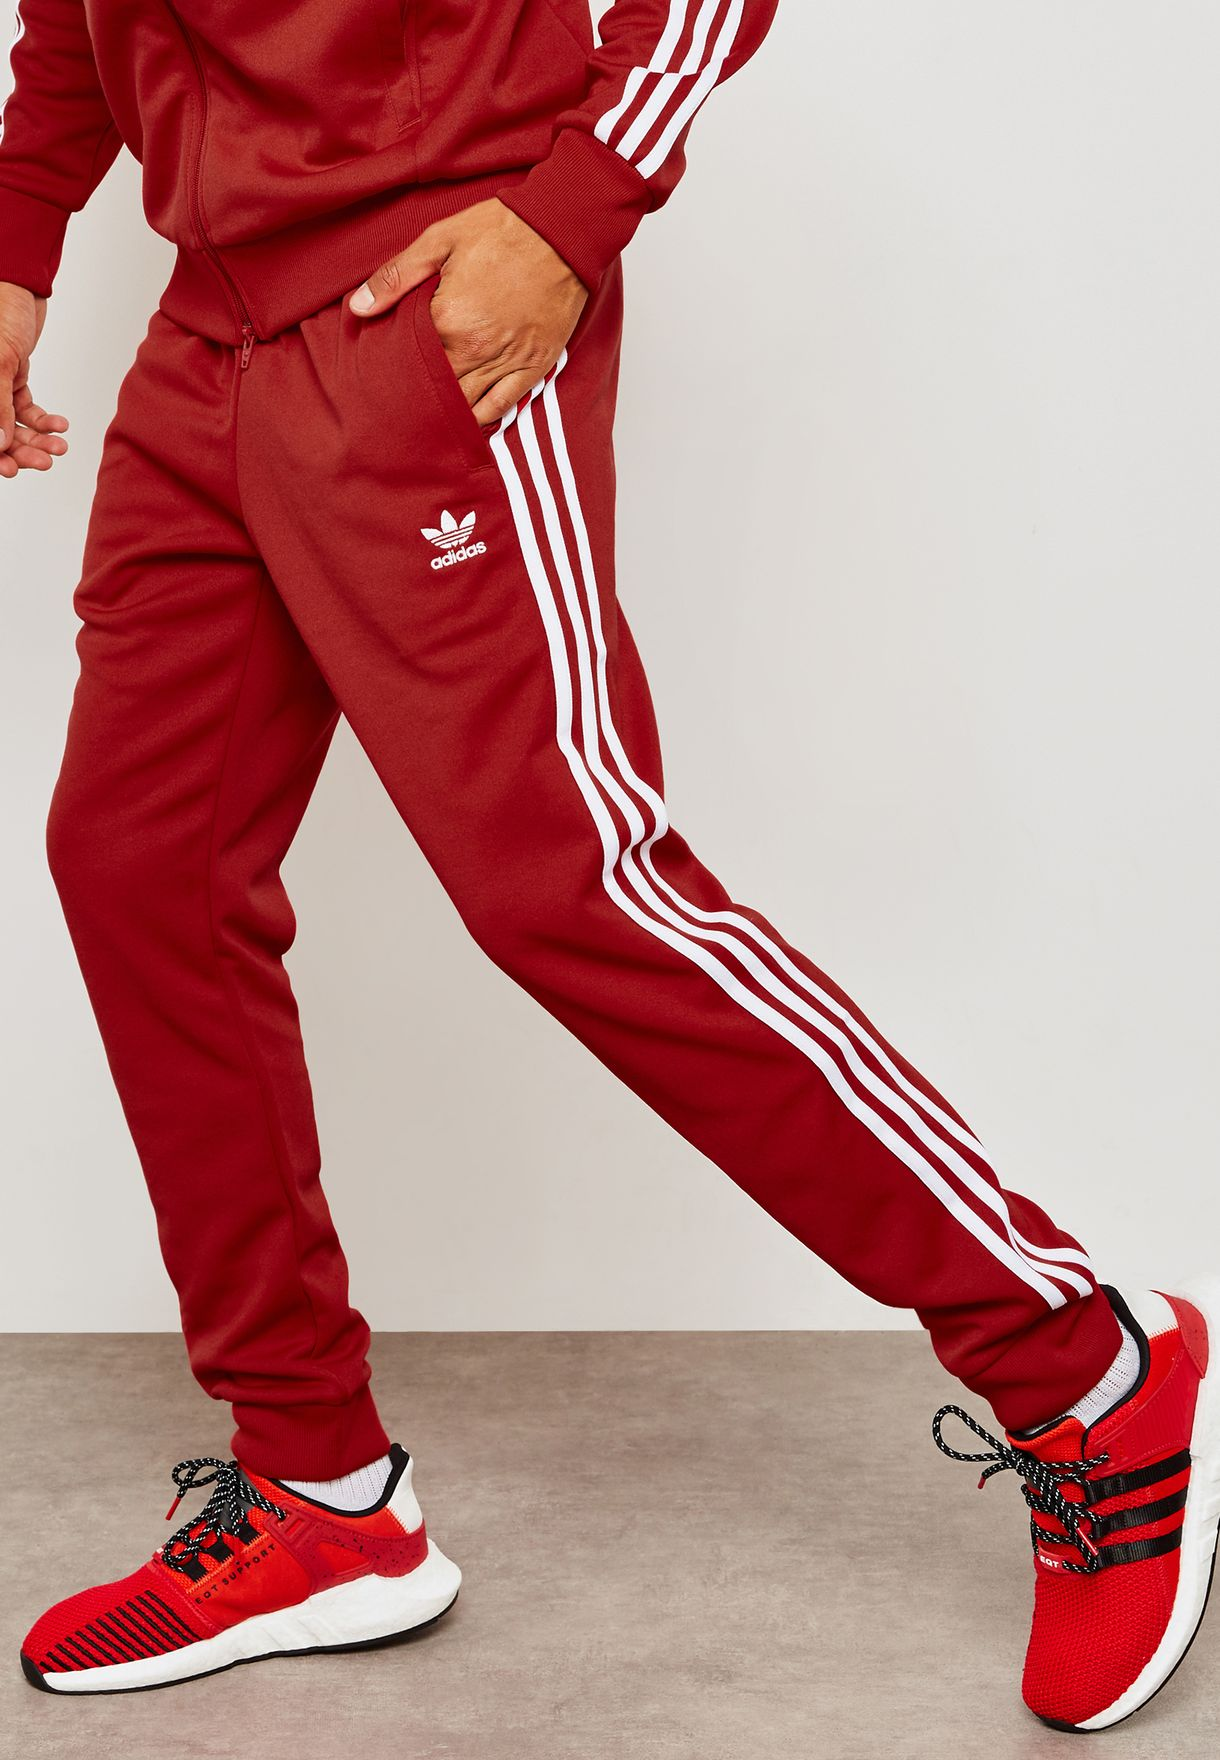 shop for whole family promo codes adicolor Superstar Sweatpants